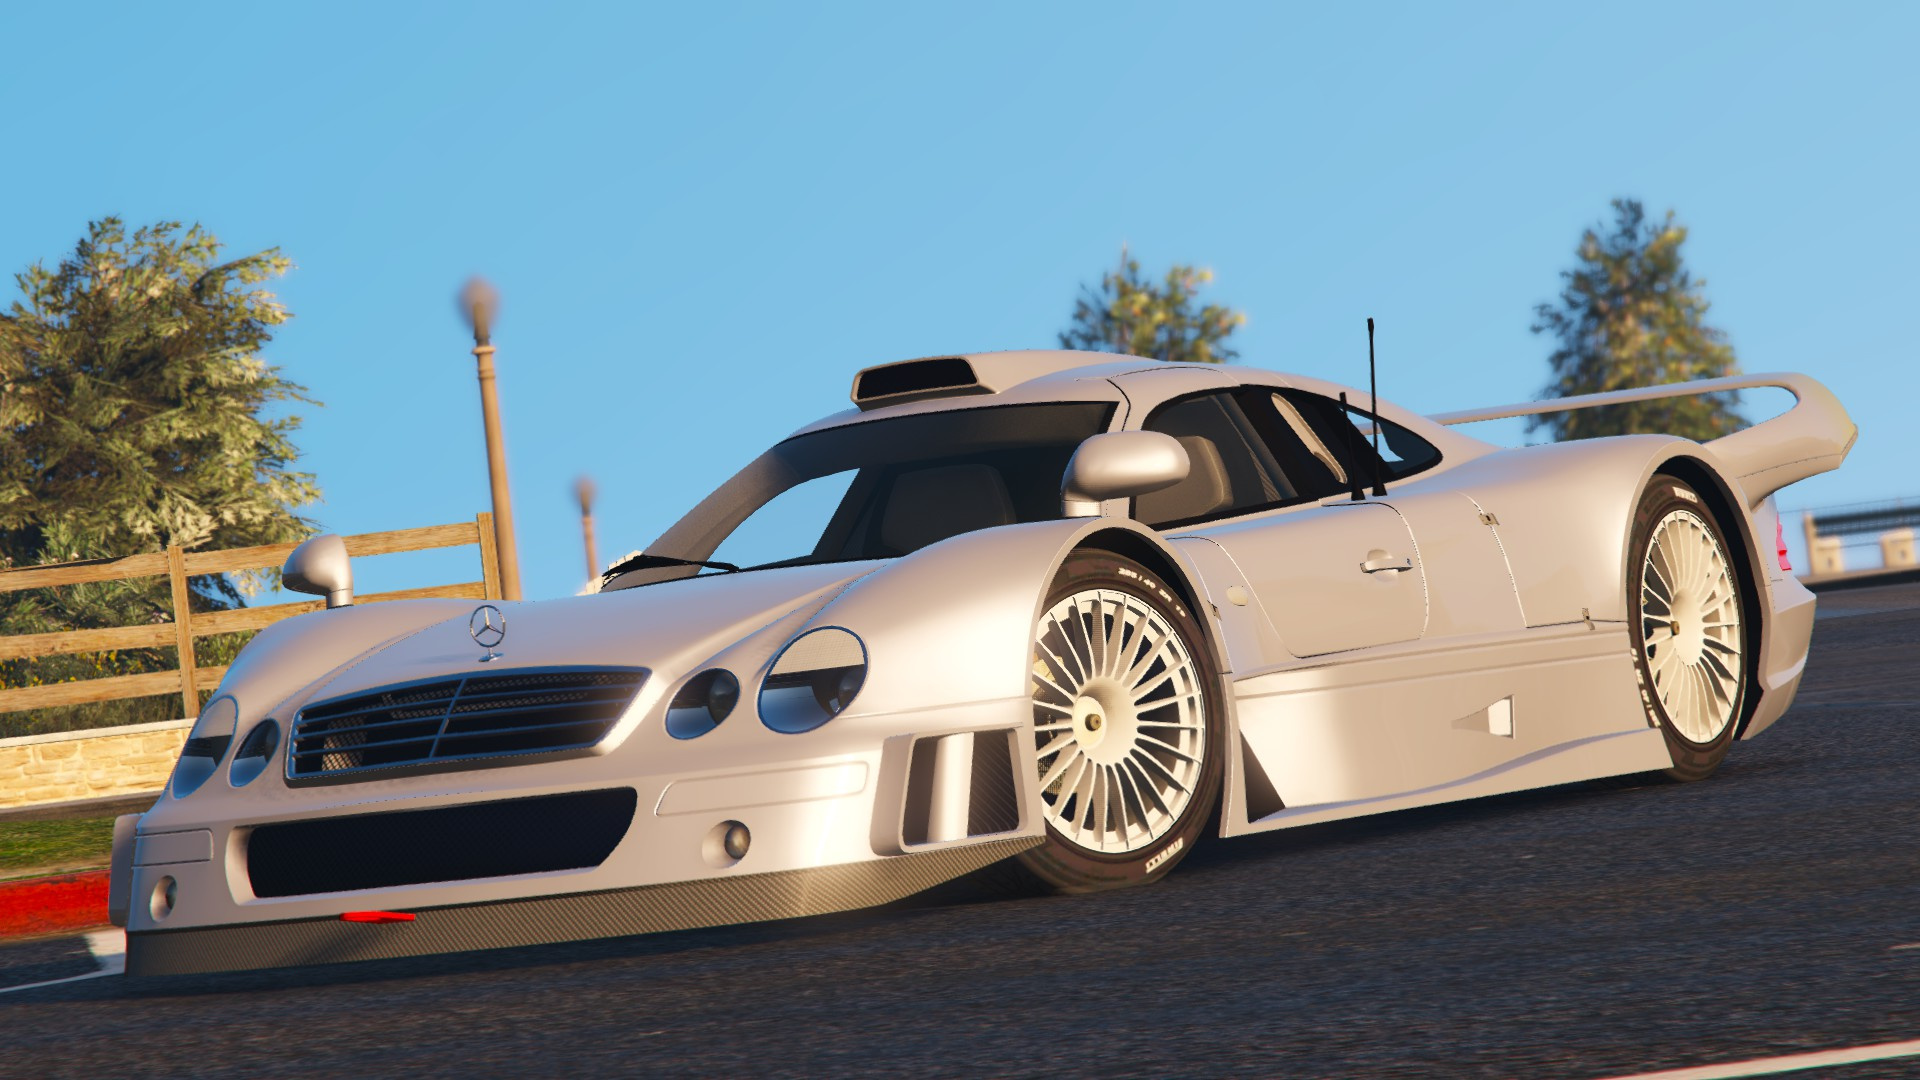 Mercedes Benz Clk Gtr >> 1999 Amg Mercedes Benz Clk Gtr Coupe Gta5 Mods Com